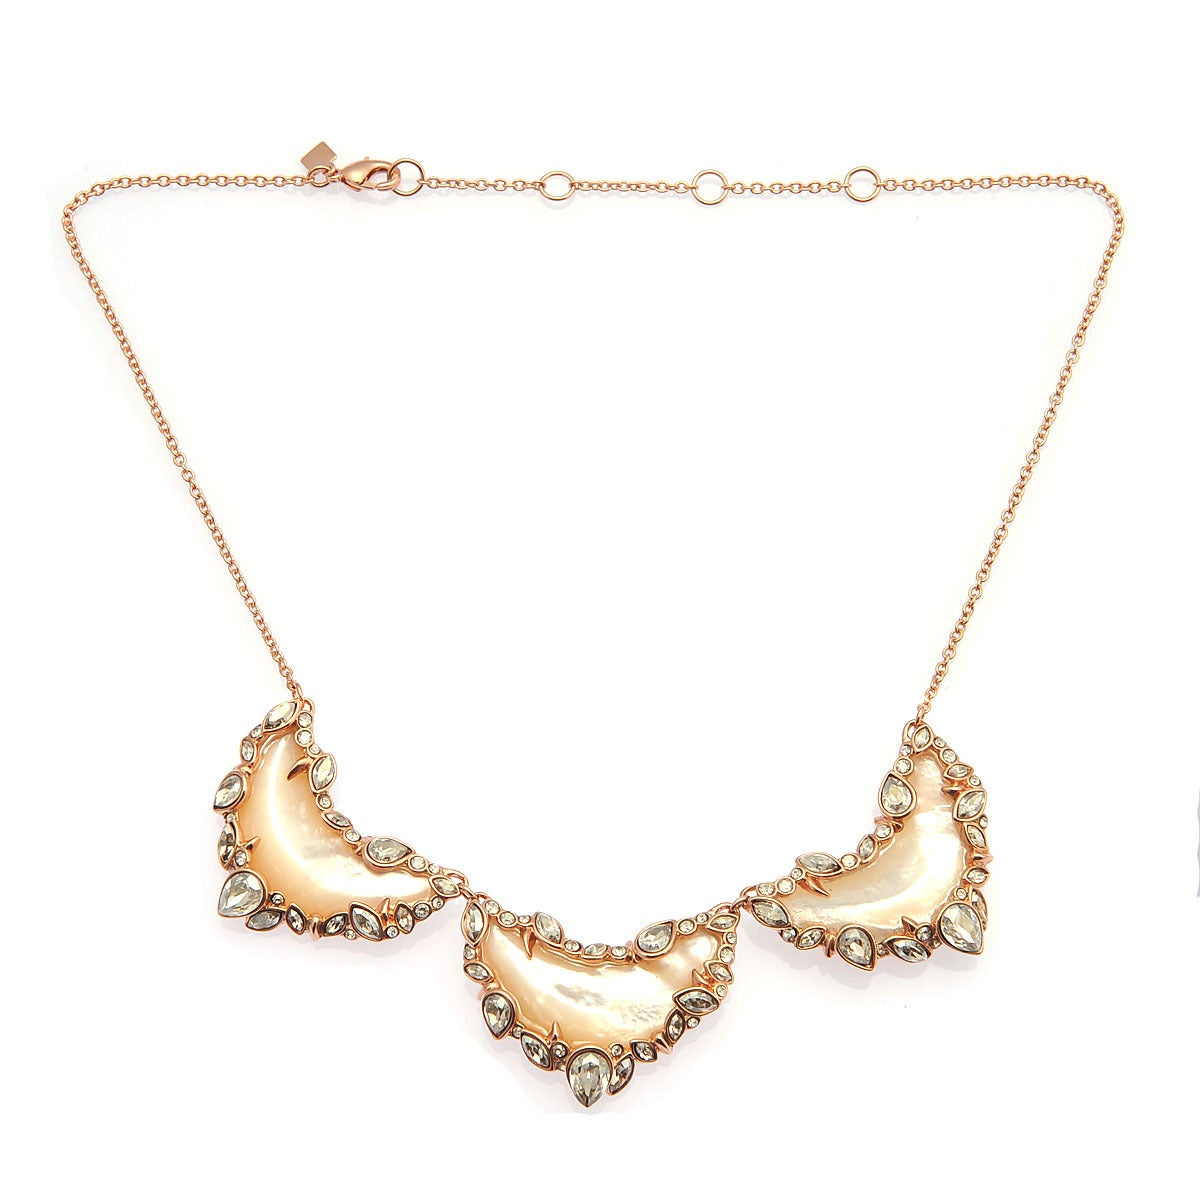 De Buman 18K Yellow Gold Plated or 18K Rose Gold Plated Mother-of-Pearl Necklace